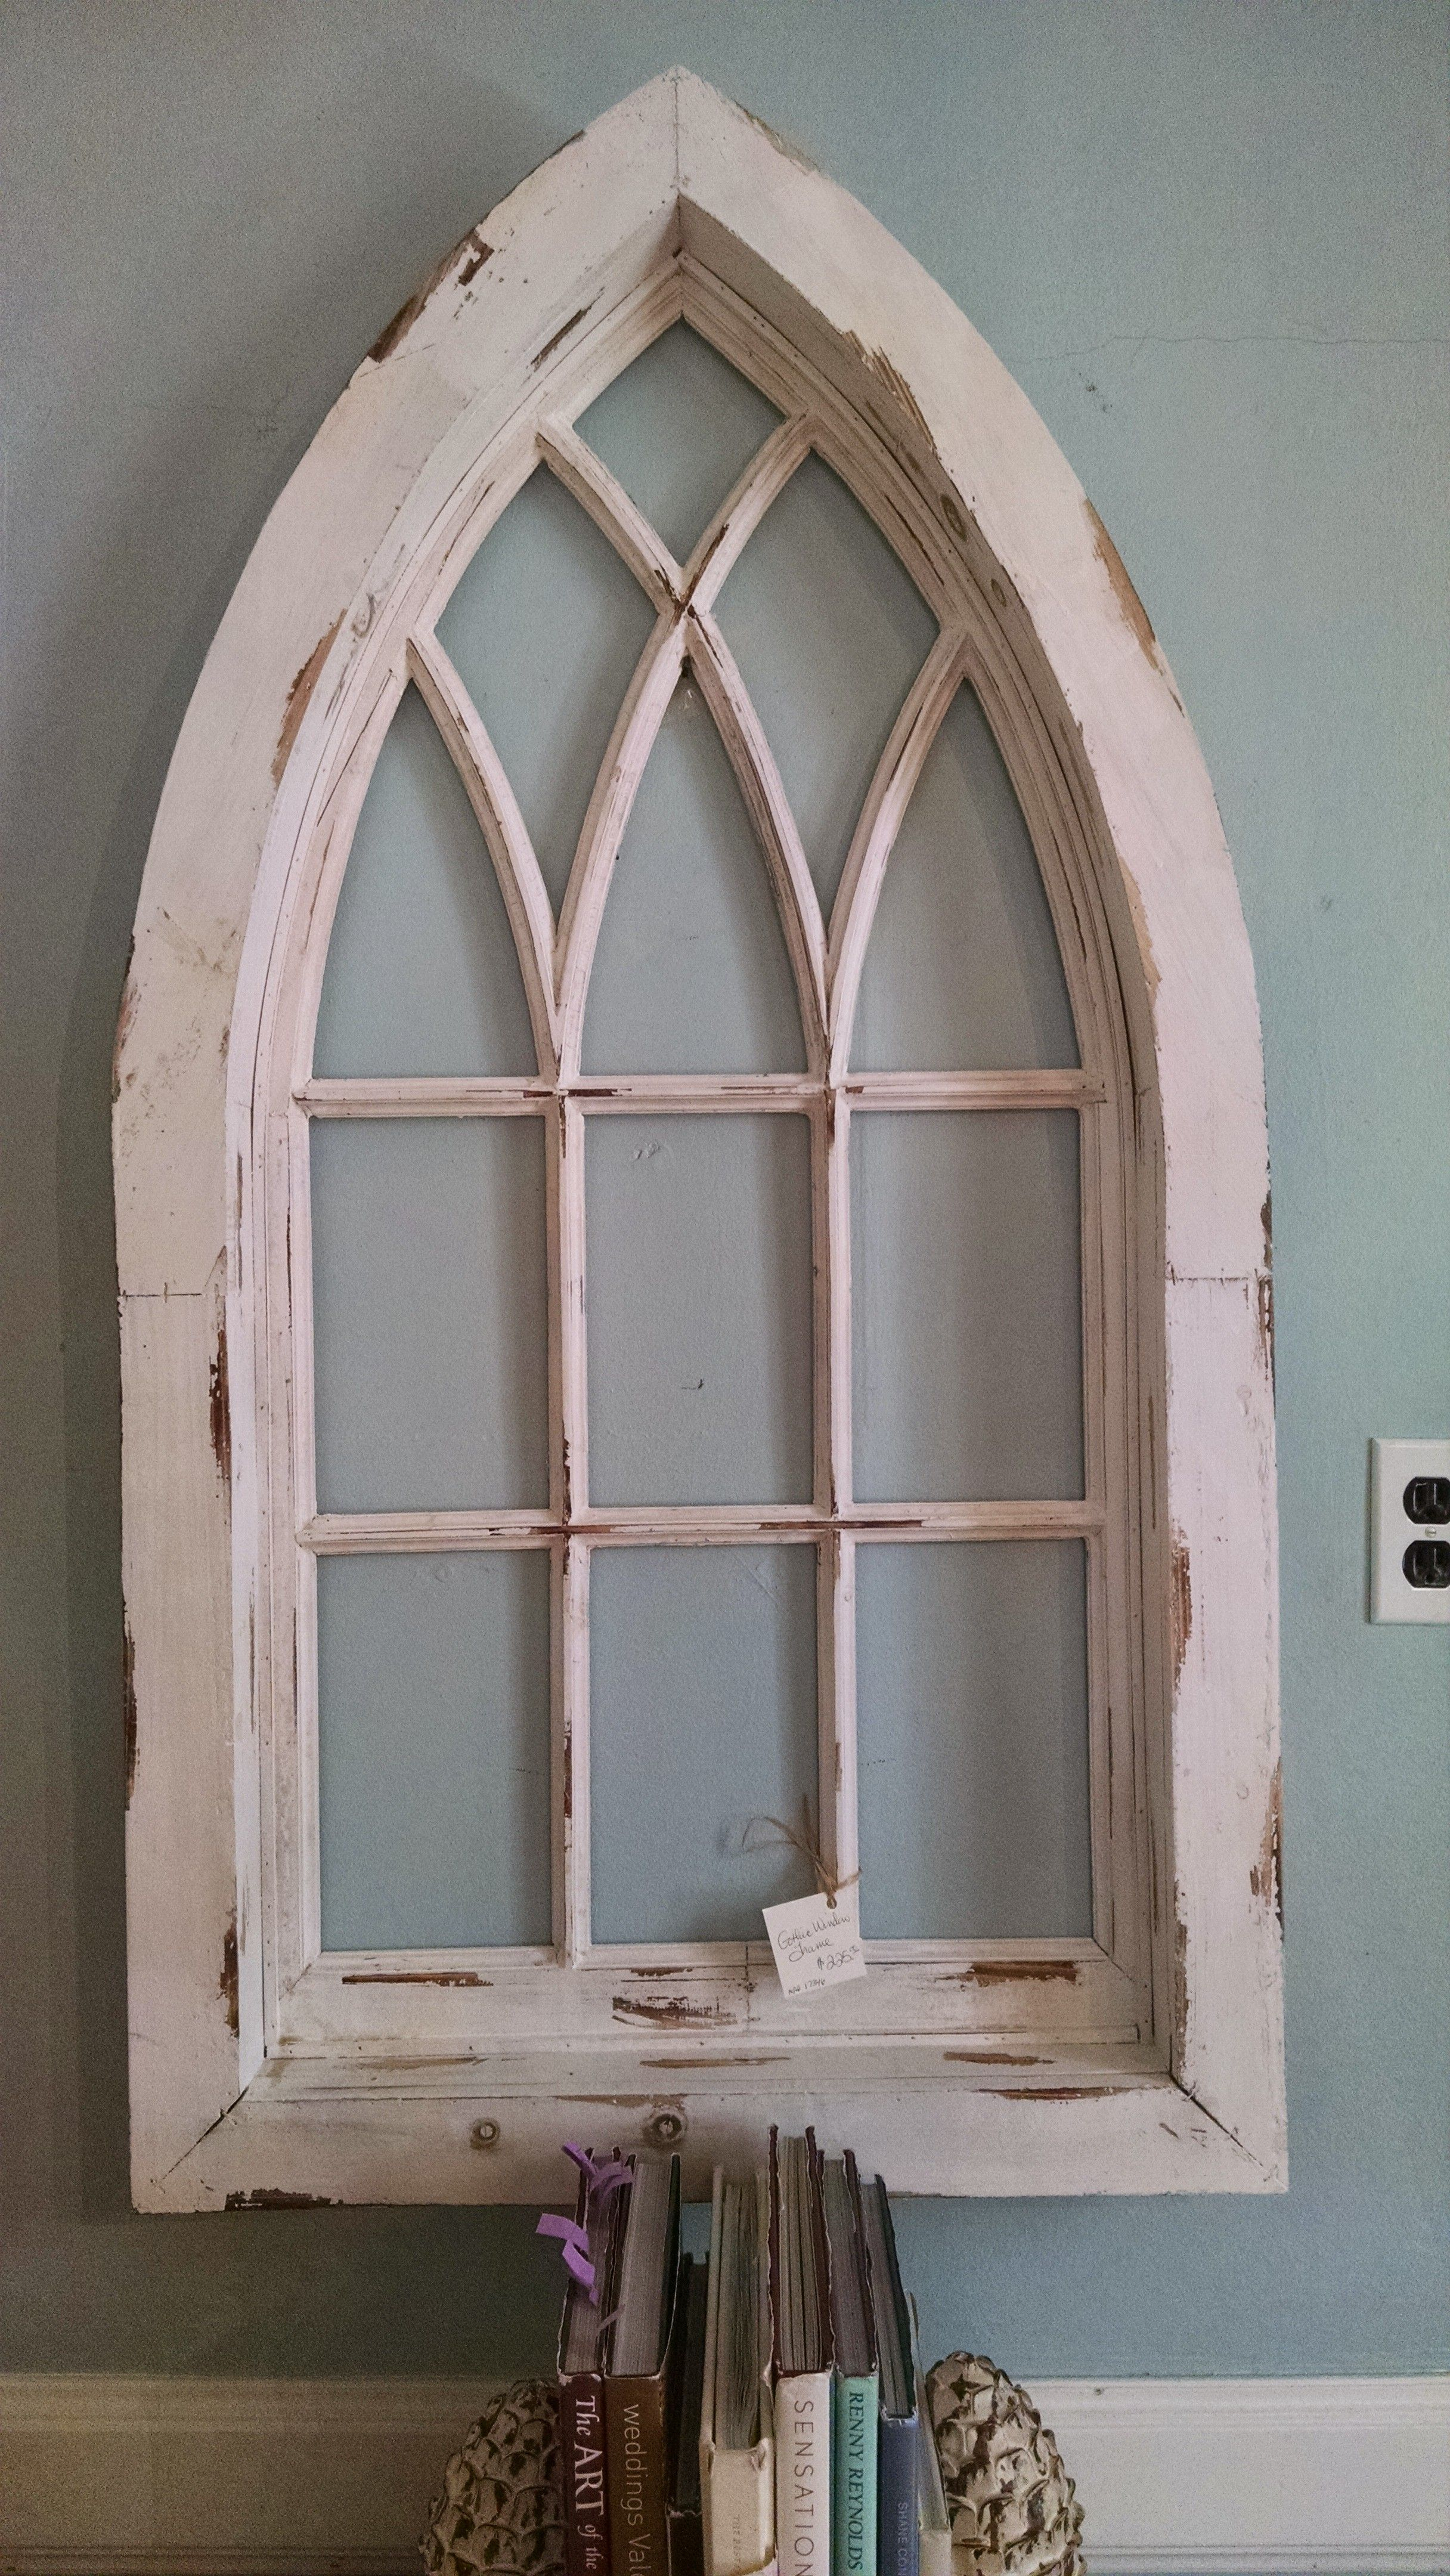 Ekster antiques our barn sale events i love these windows chapel window wall decor church window cathedral window decorative wood window frame amipublicfo Gallery